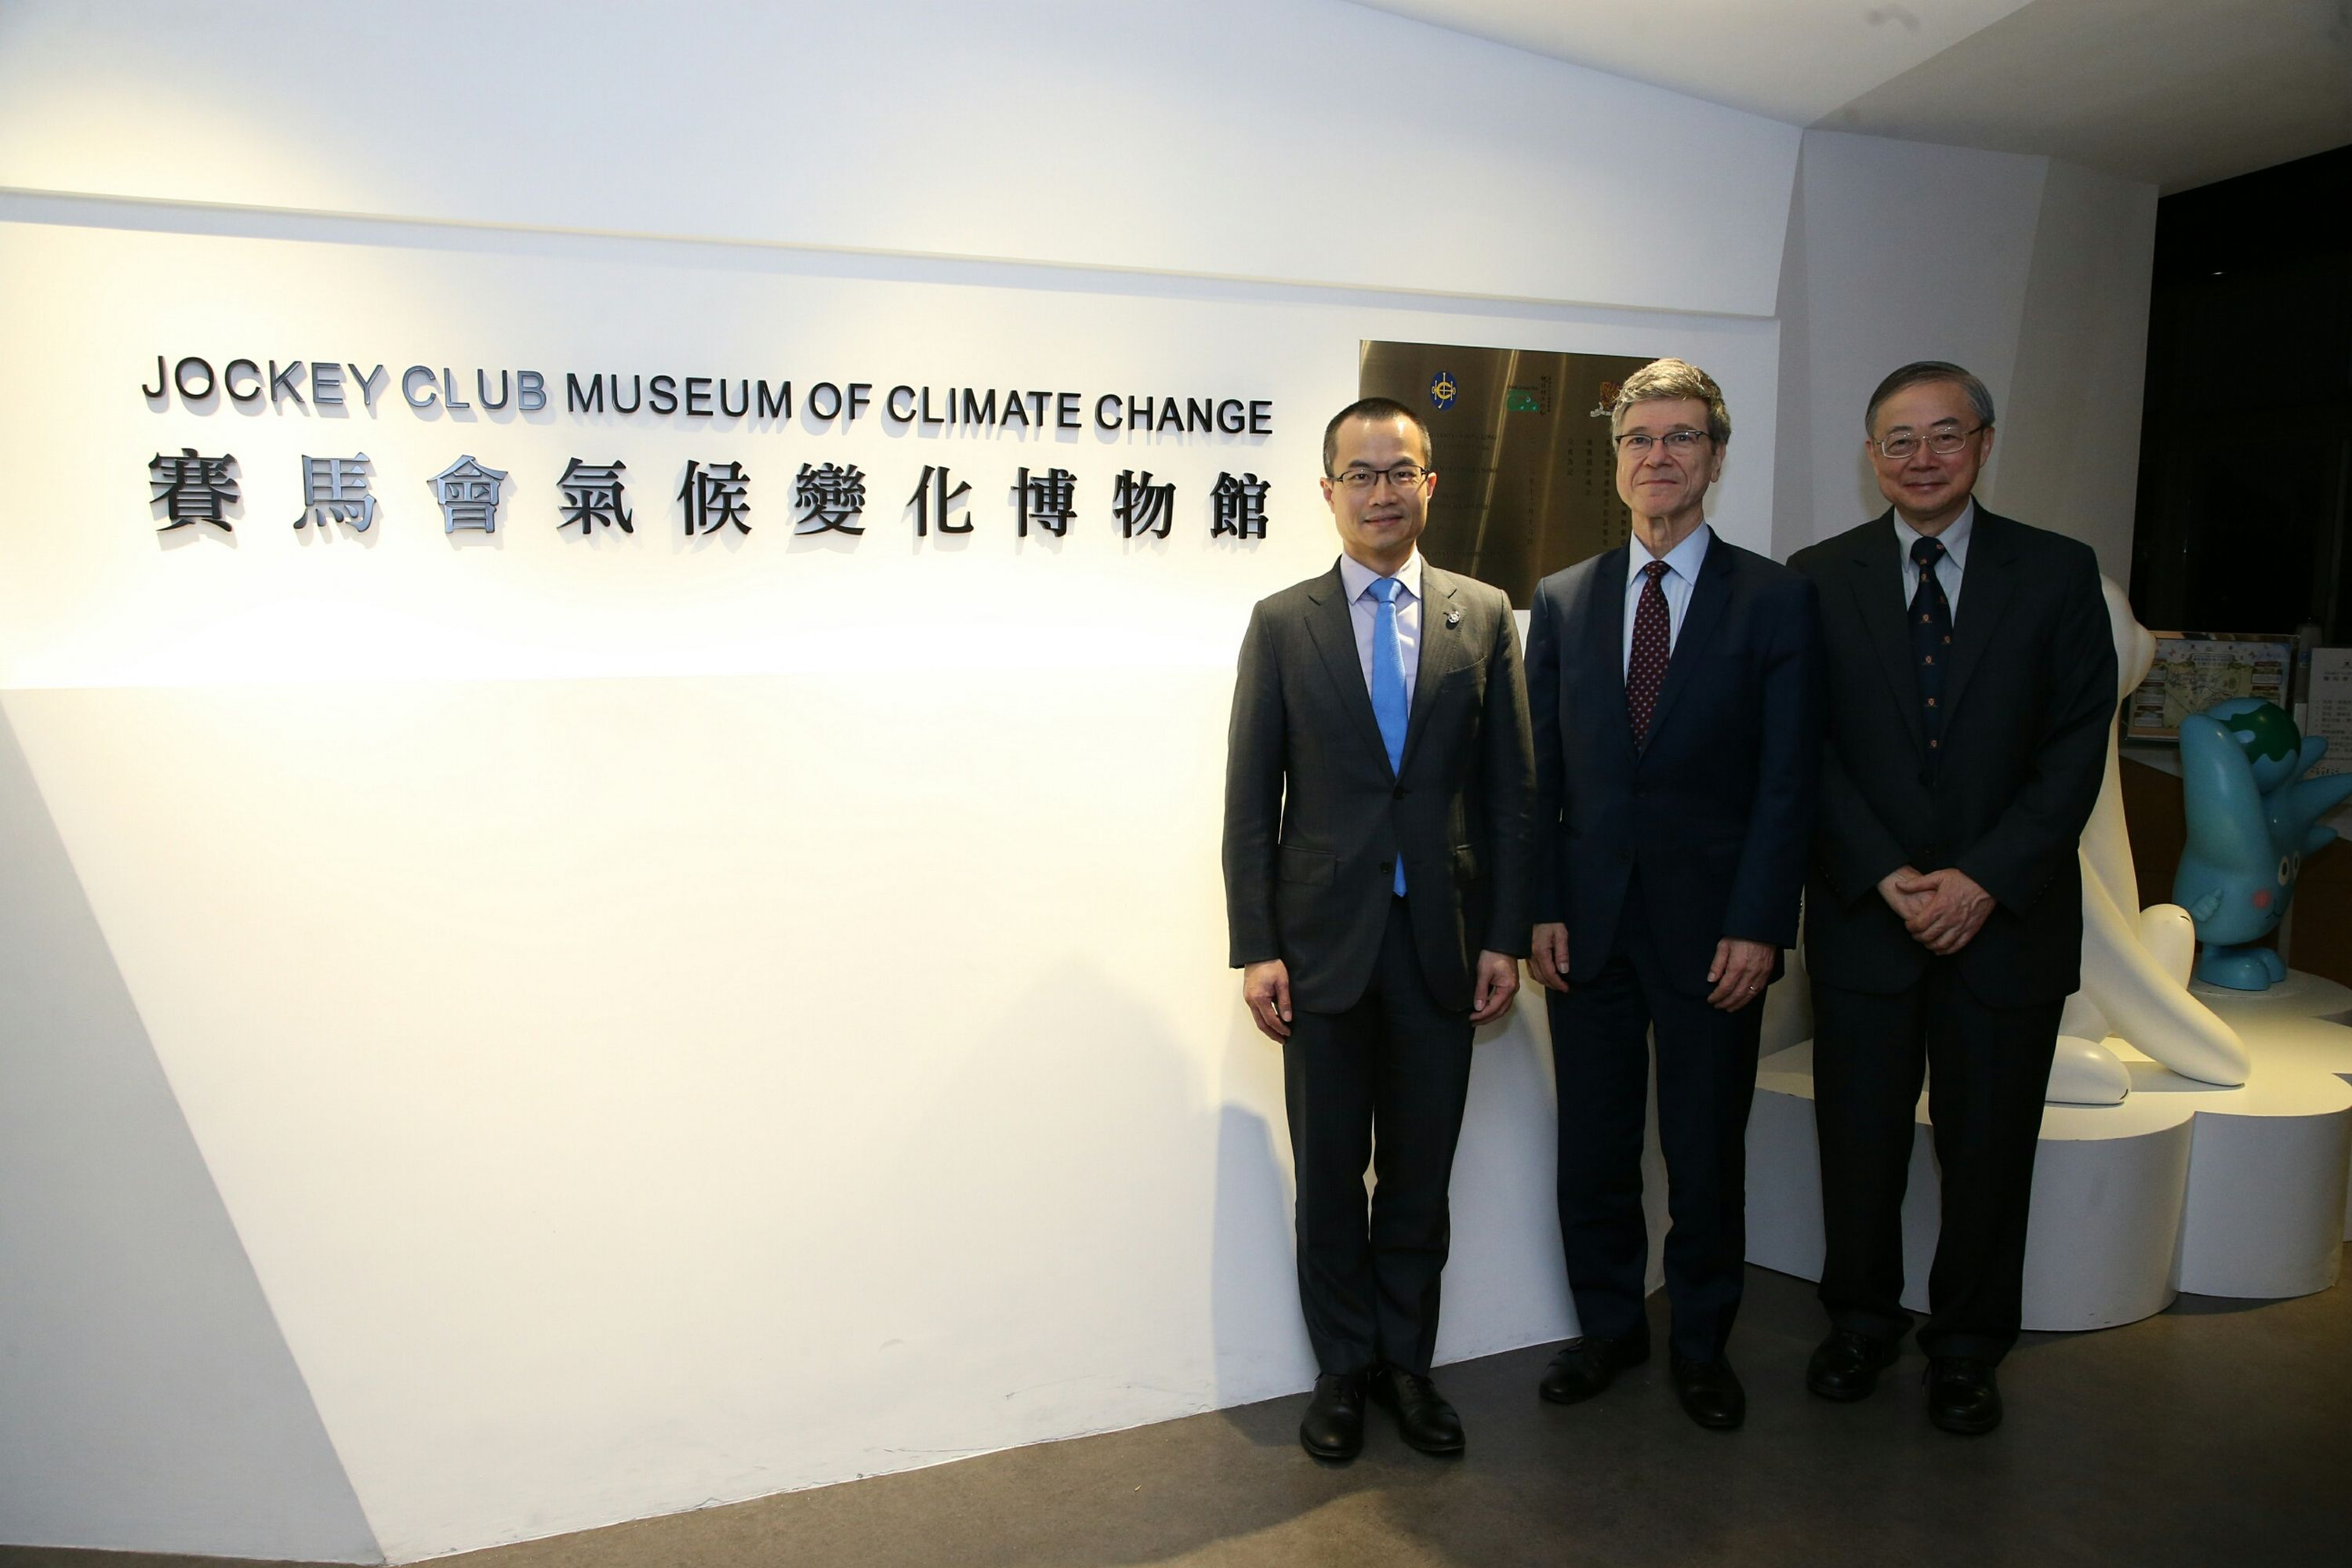 Guests tour the Jockey Club Museum of Climate Change.